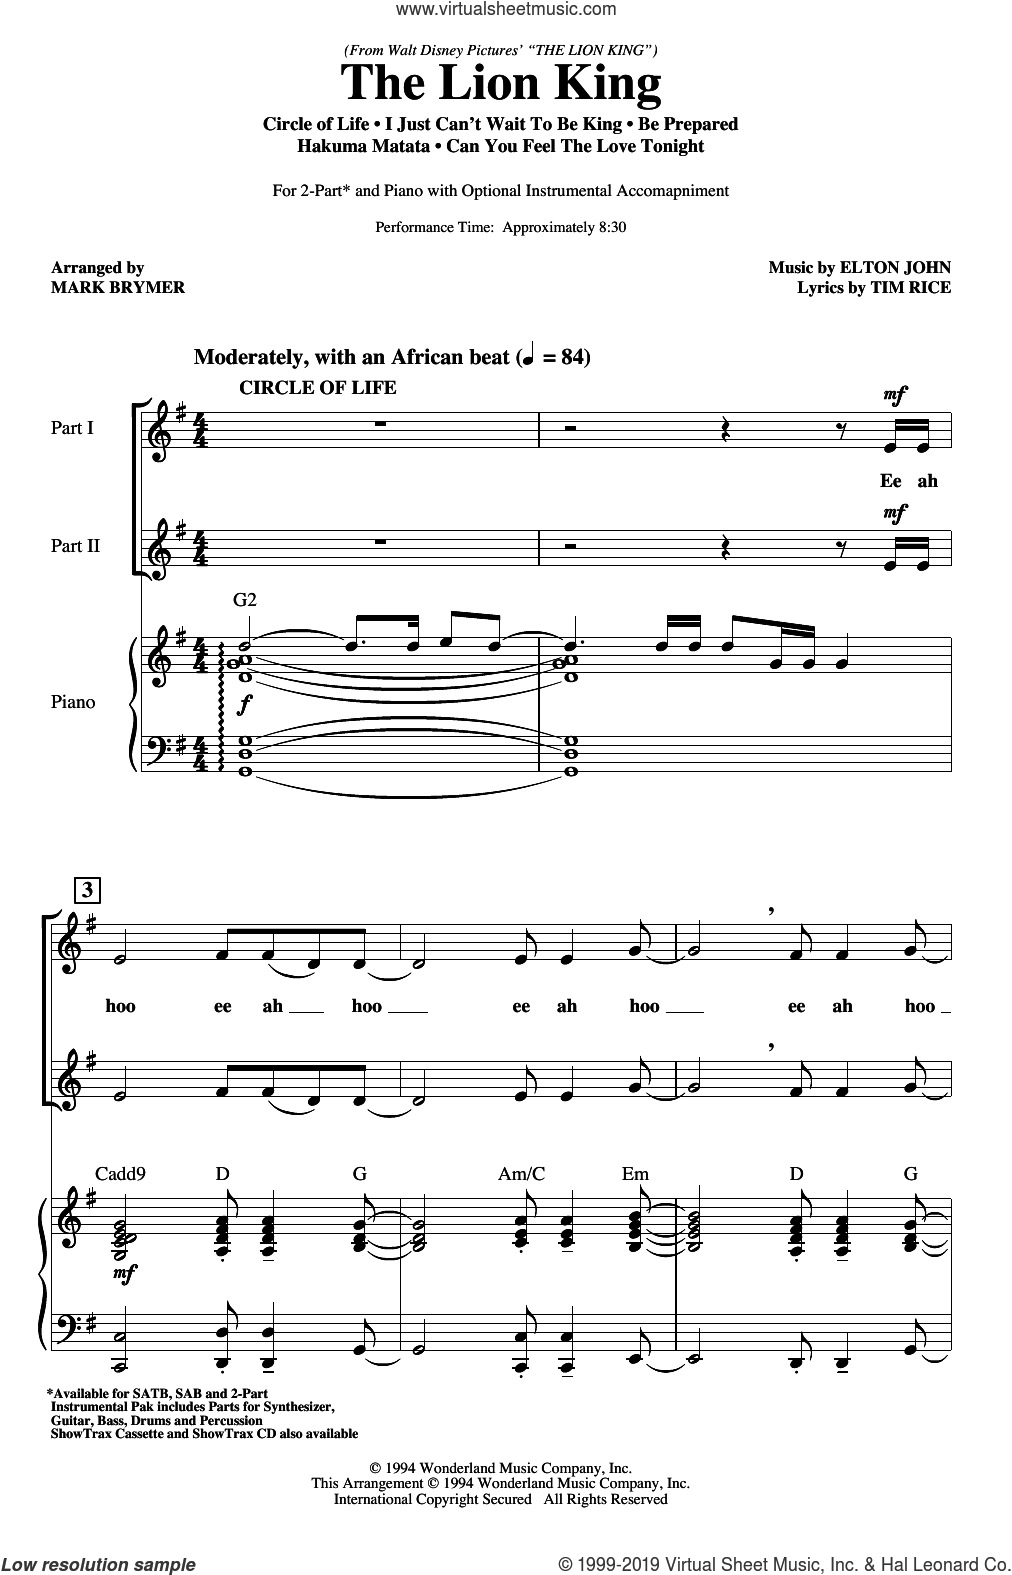 The Lion King (Medley) (arr. Mark Brymer) sheet music for choir (2-Part) by Elton John, Mark Brymer, Elton John & Tim Rice and Tim Rice, intermediate duet